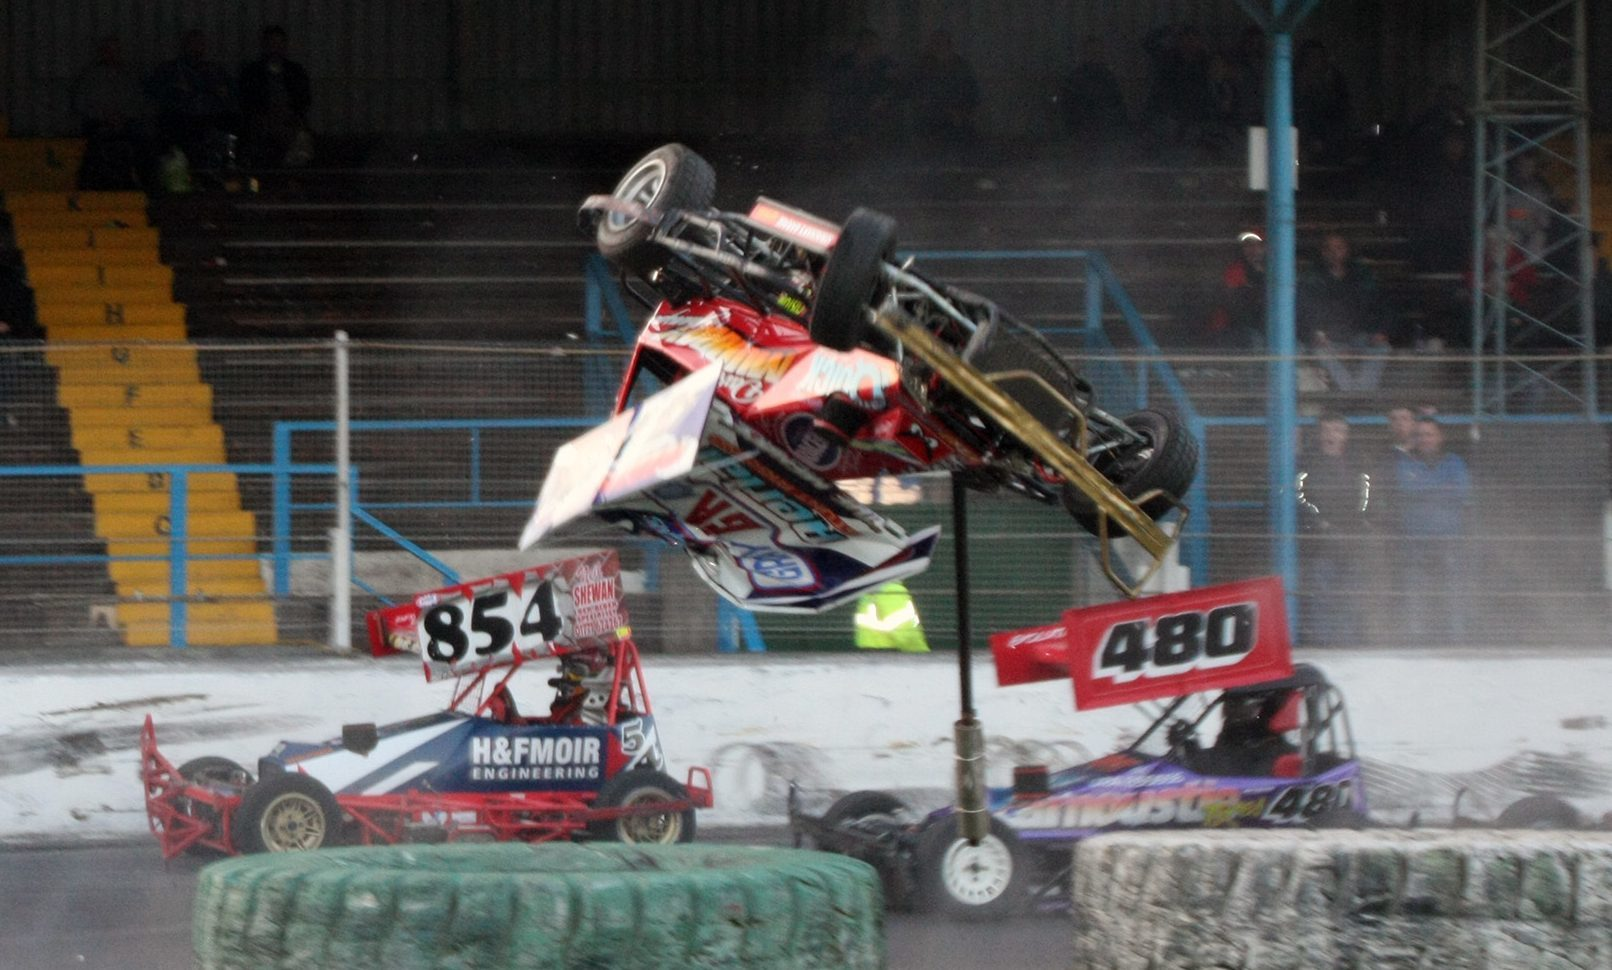 Dennis Middler catches air in the spectacular crash.